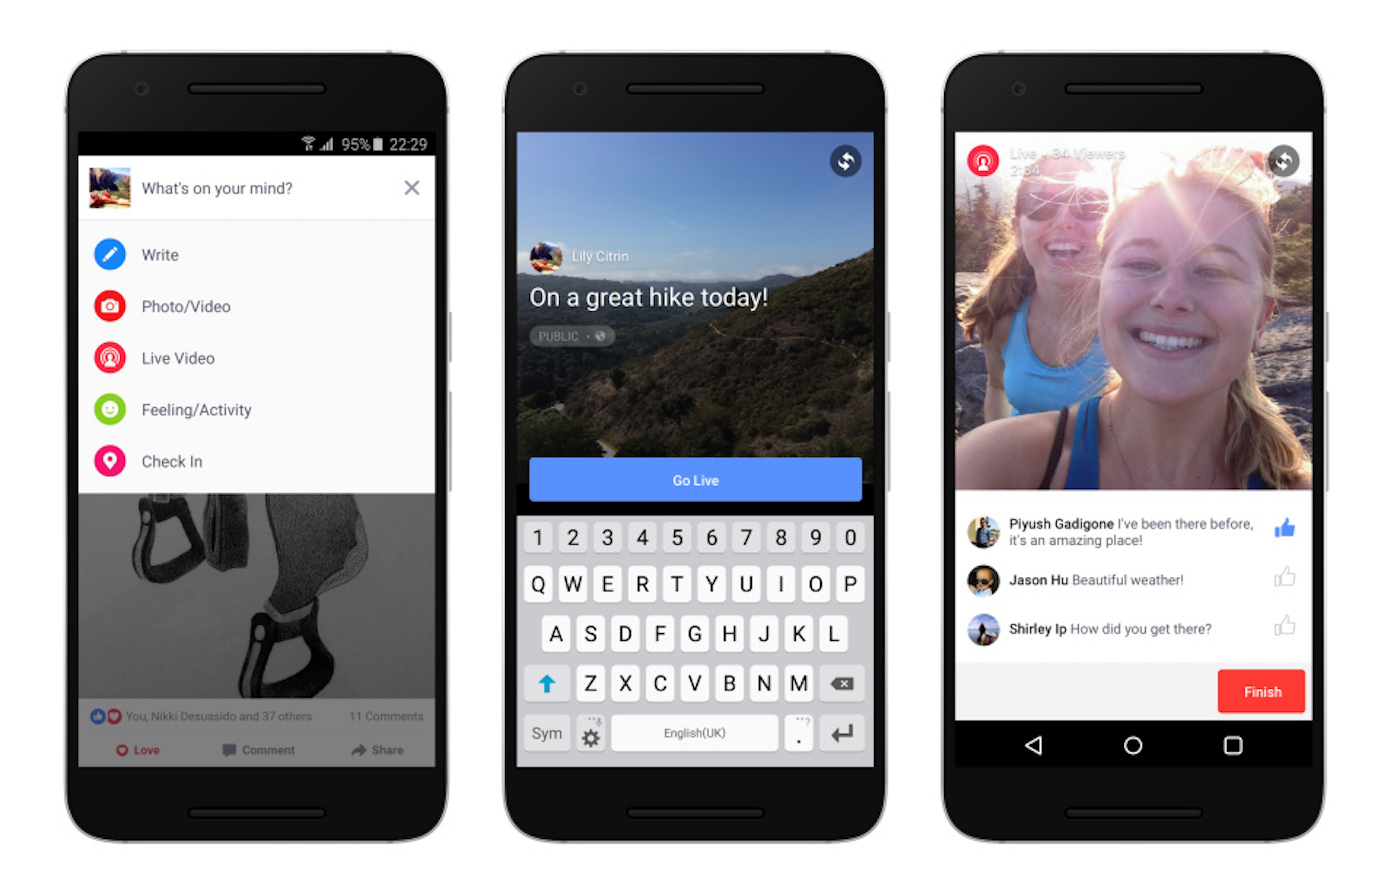 Facebook Live Video Coming To Android